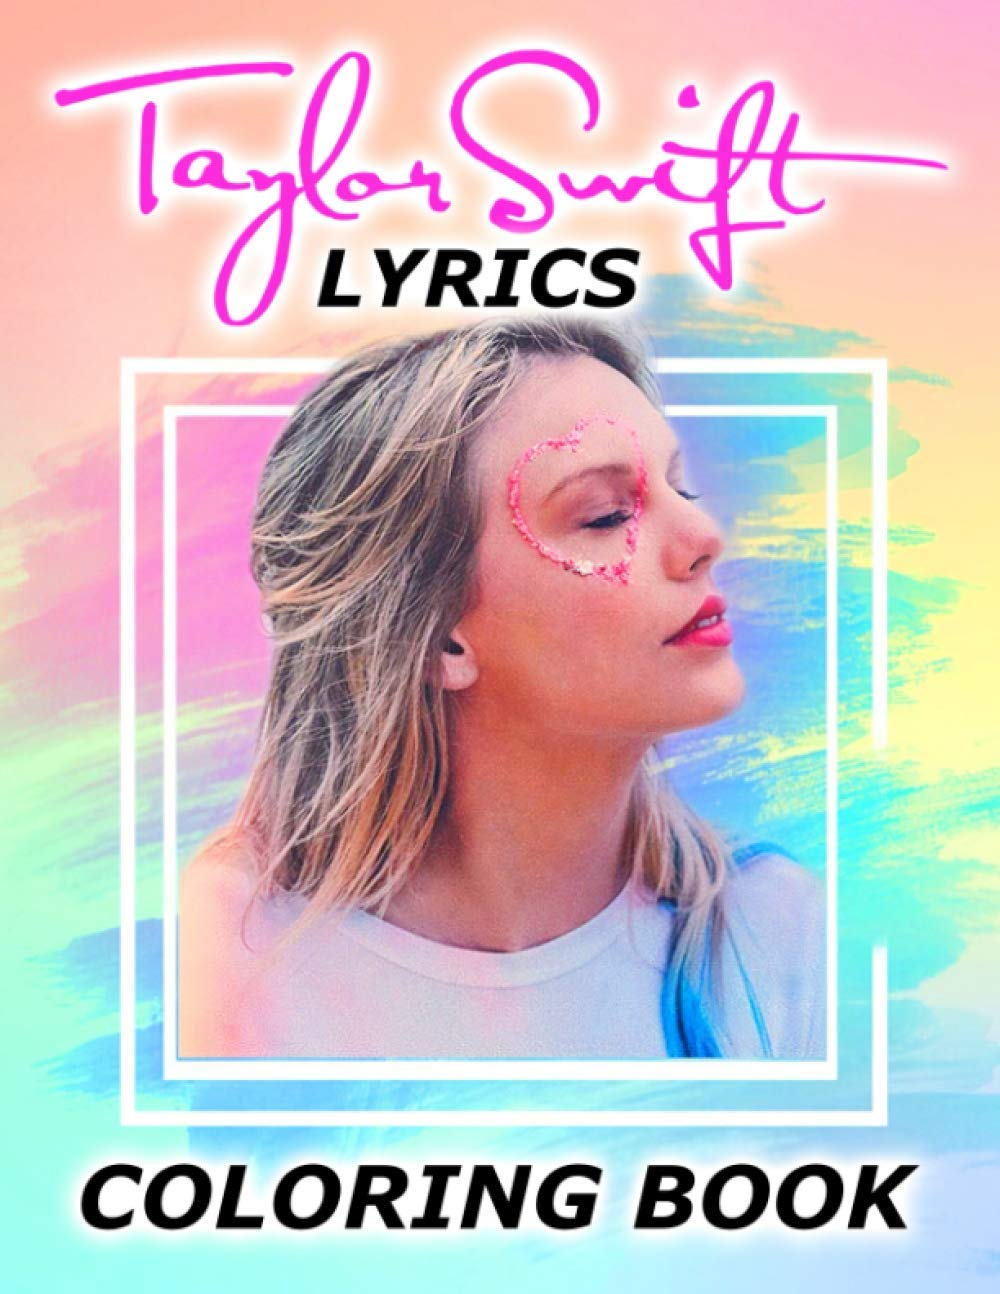 Taylor Swift Lyrics Coloring Book Gorgeous Present For Taylor ...